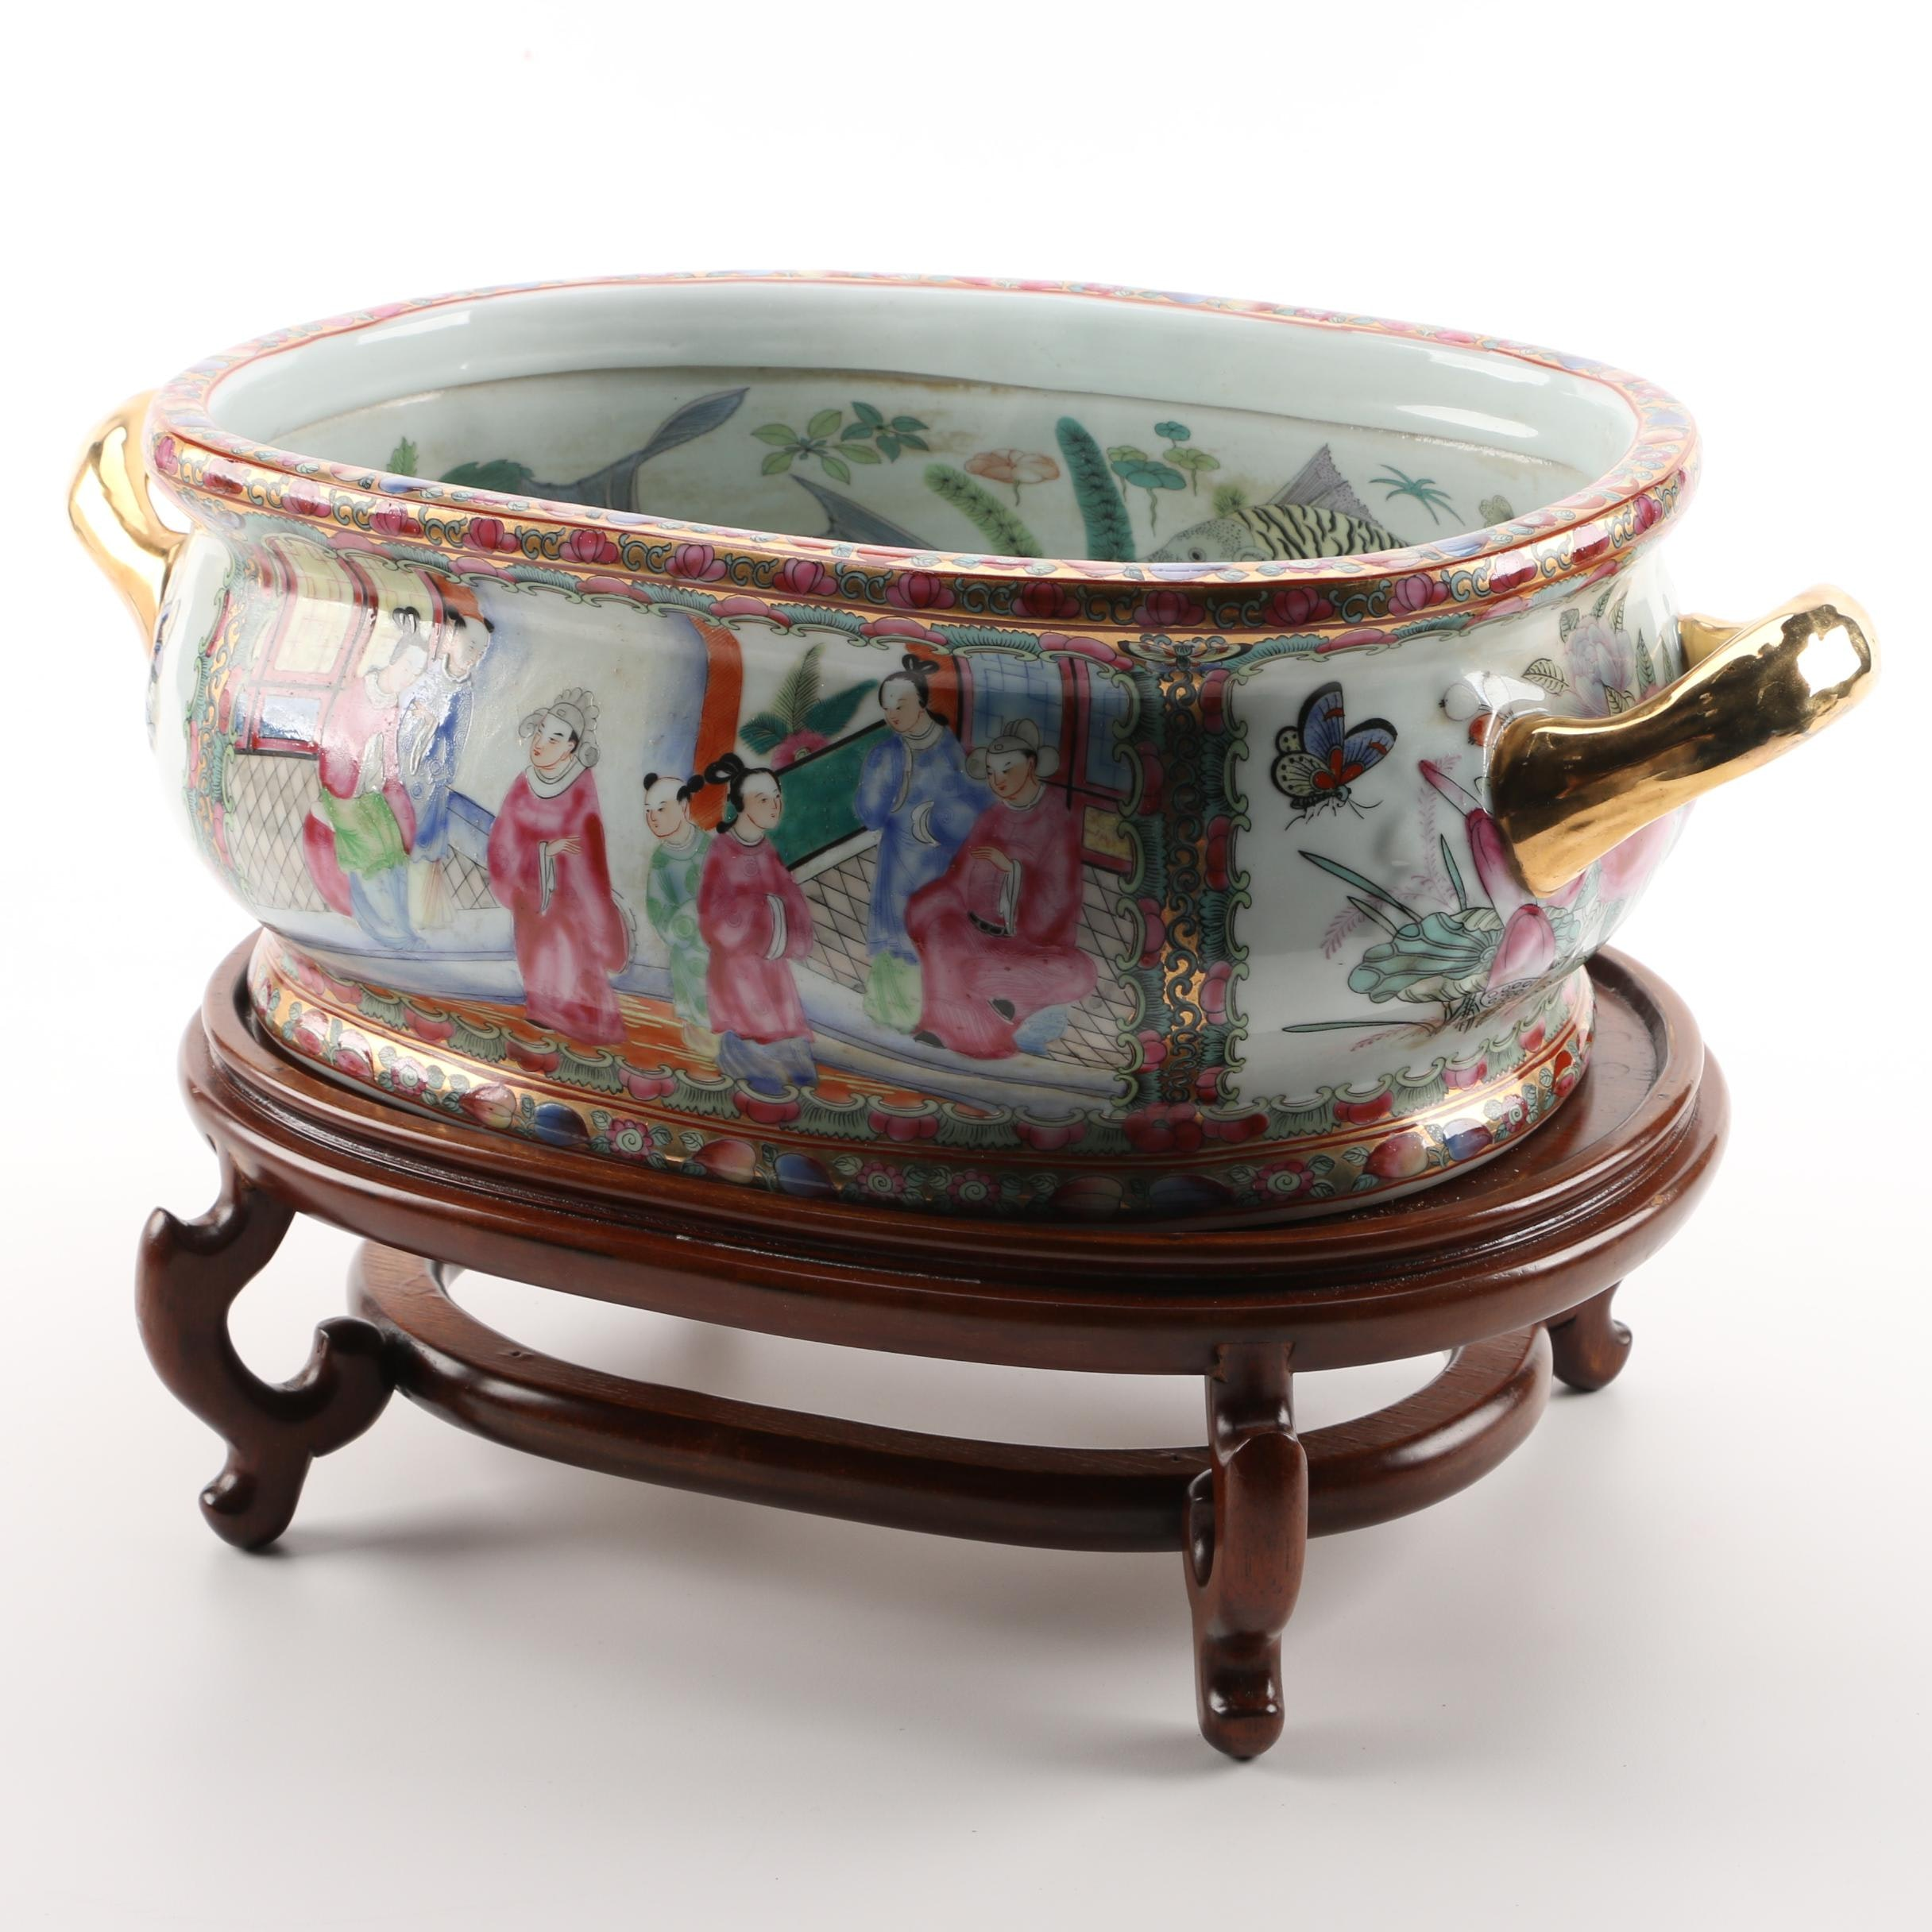 Chinese Rose Medallion Footbath with Lacquered Wood Stand